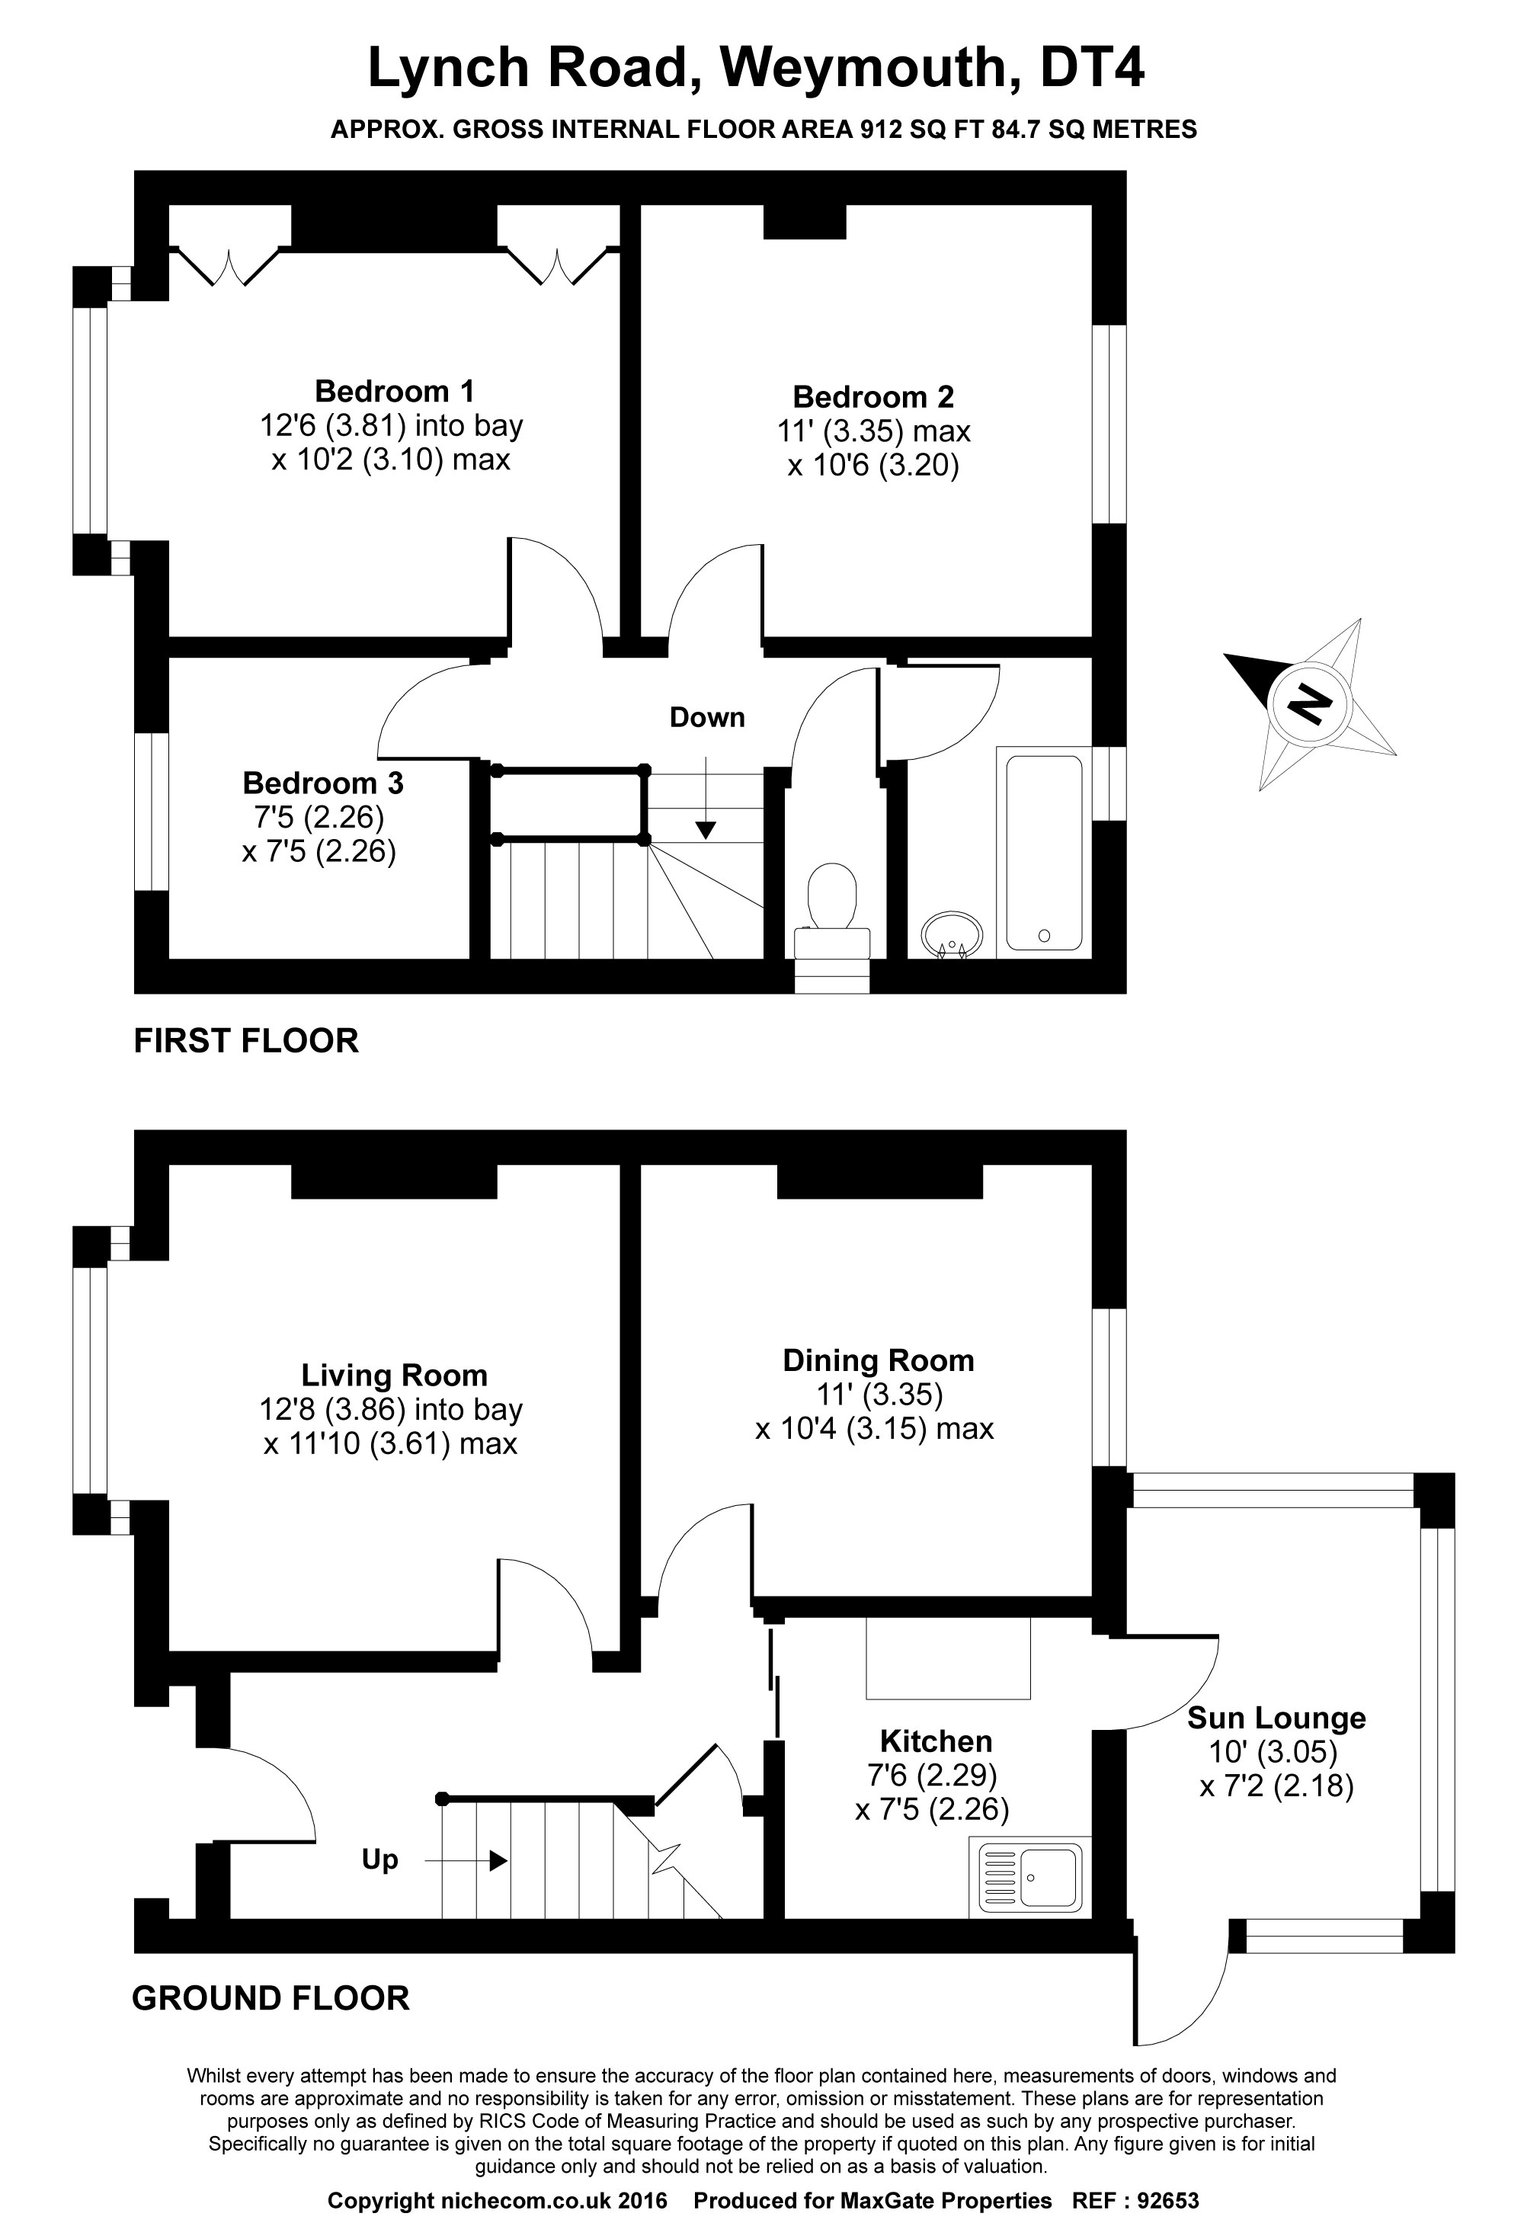 Floorplan for 21 Lynch Road